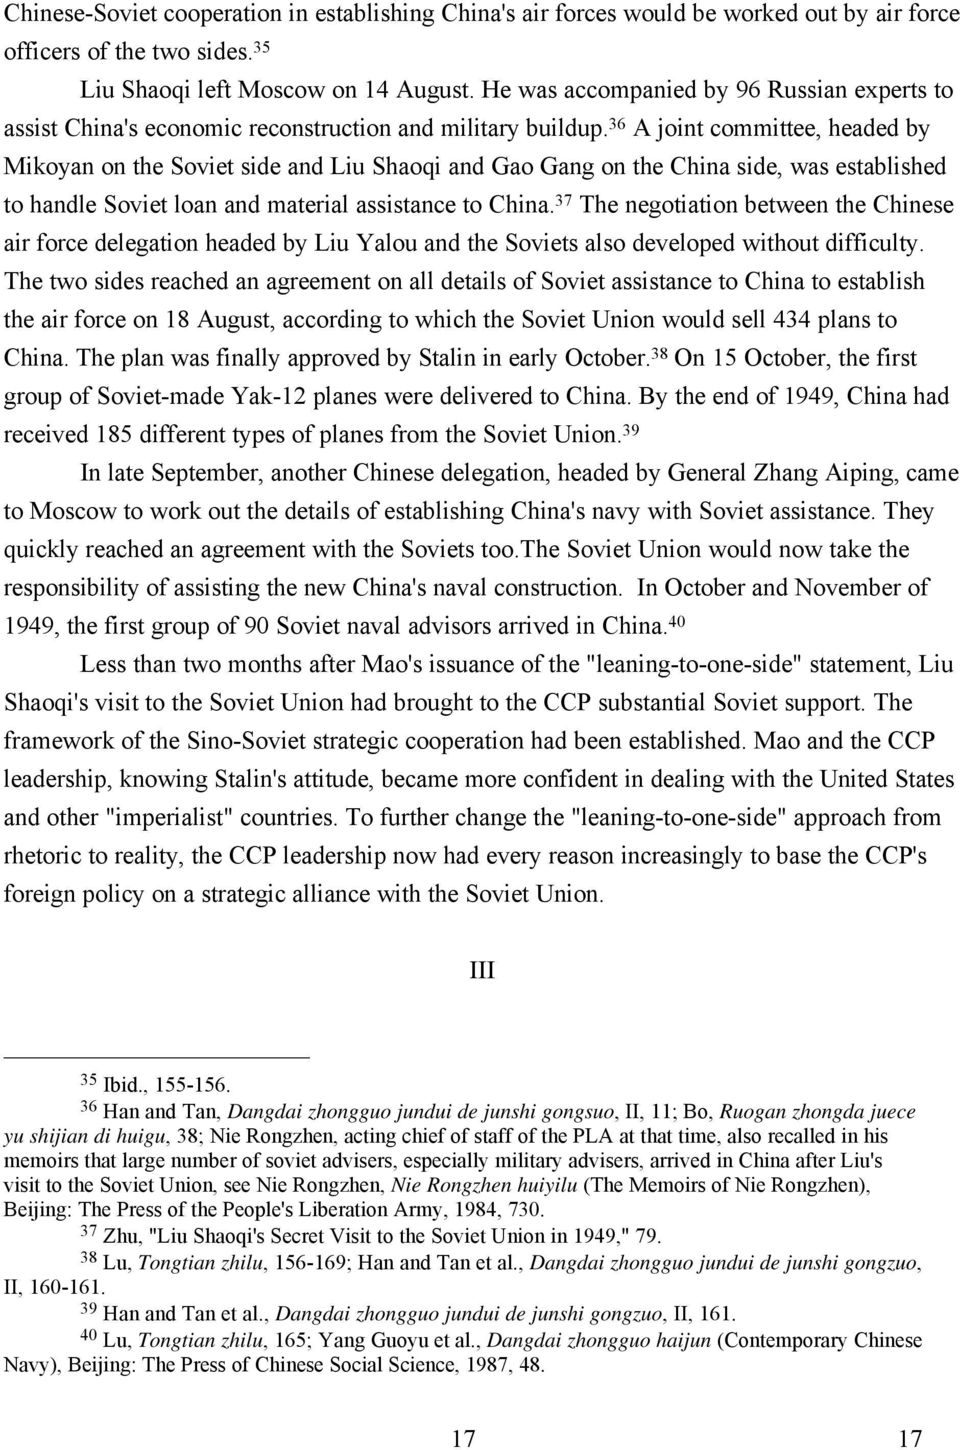 36 A joint committee, headed by Mikoyan on the Soviet side and Liu Shaoqi and Gao Gang on the China side, was established to handle Soviet loan and material assistance to China.